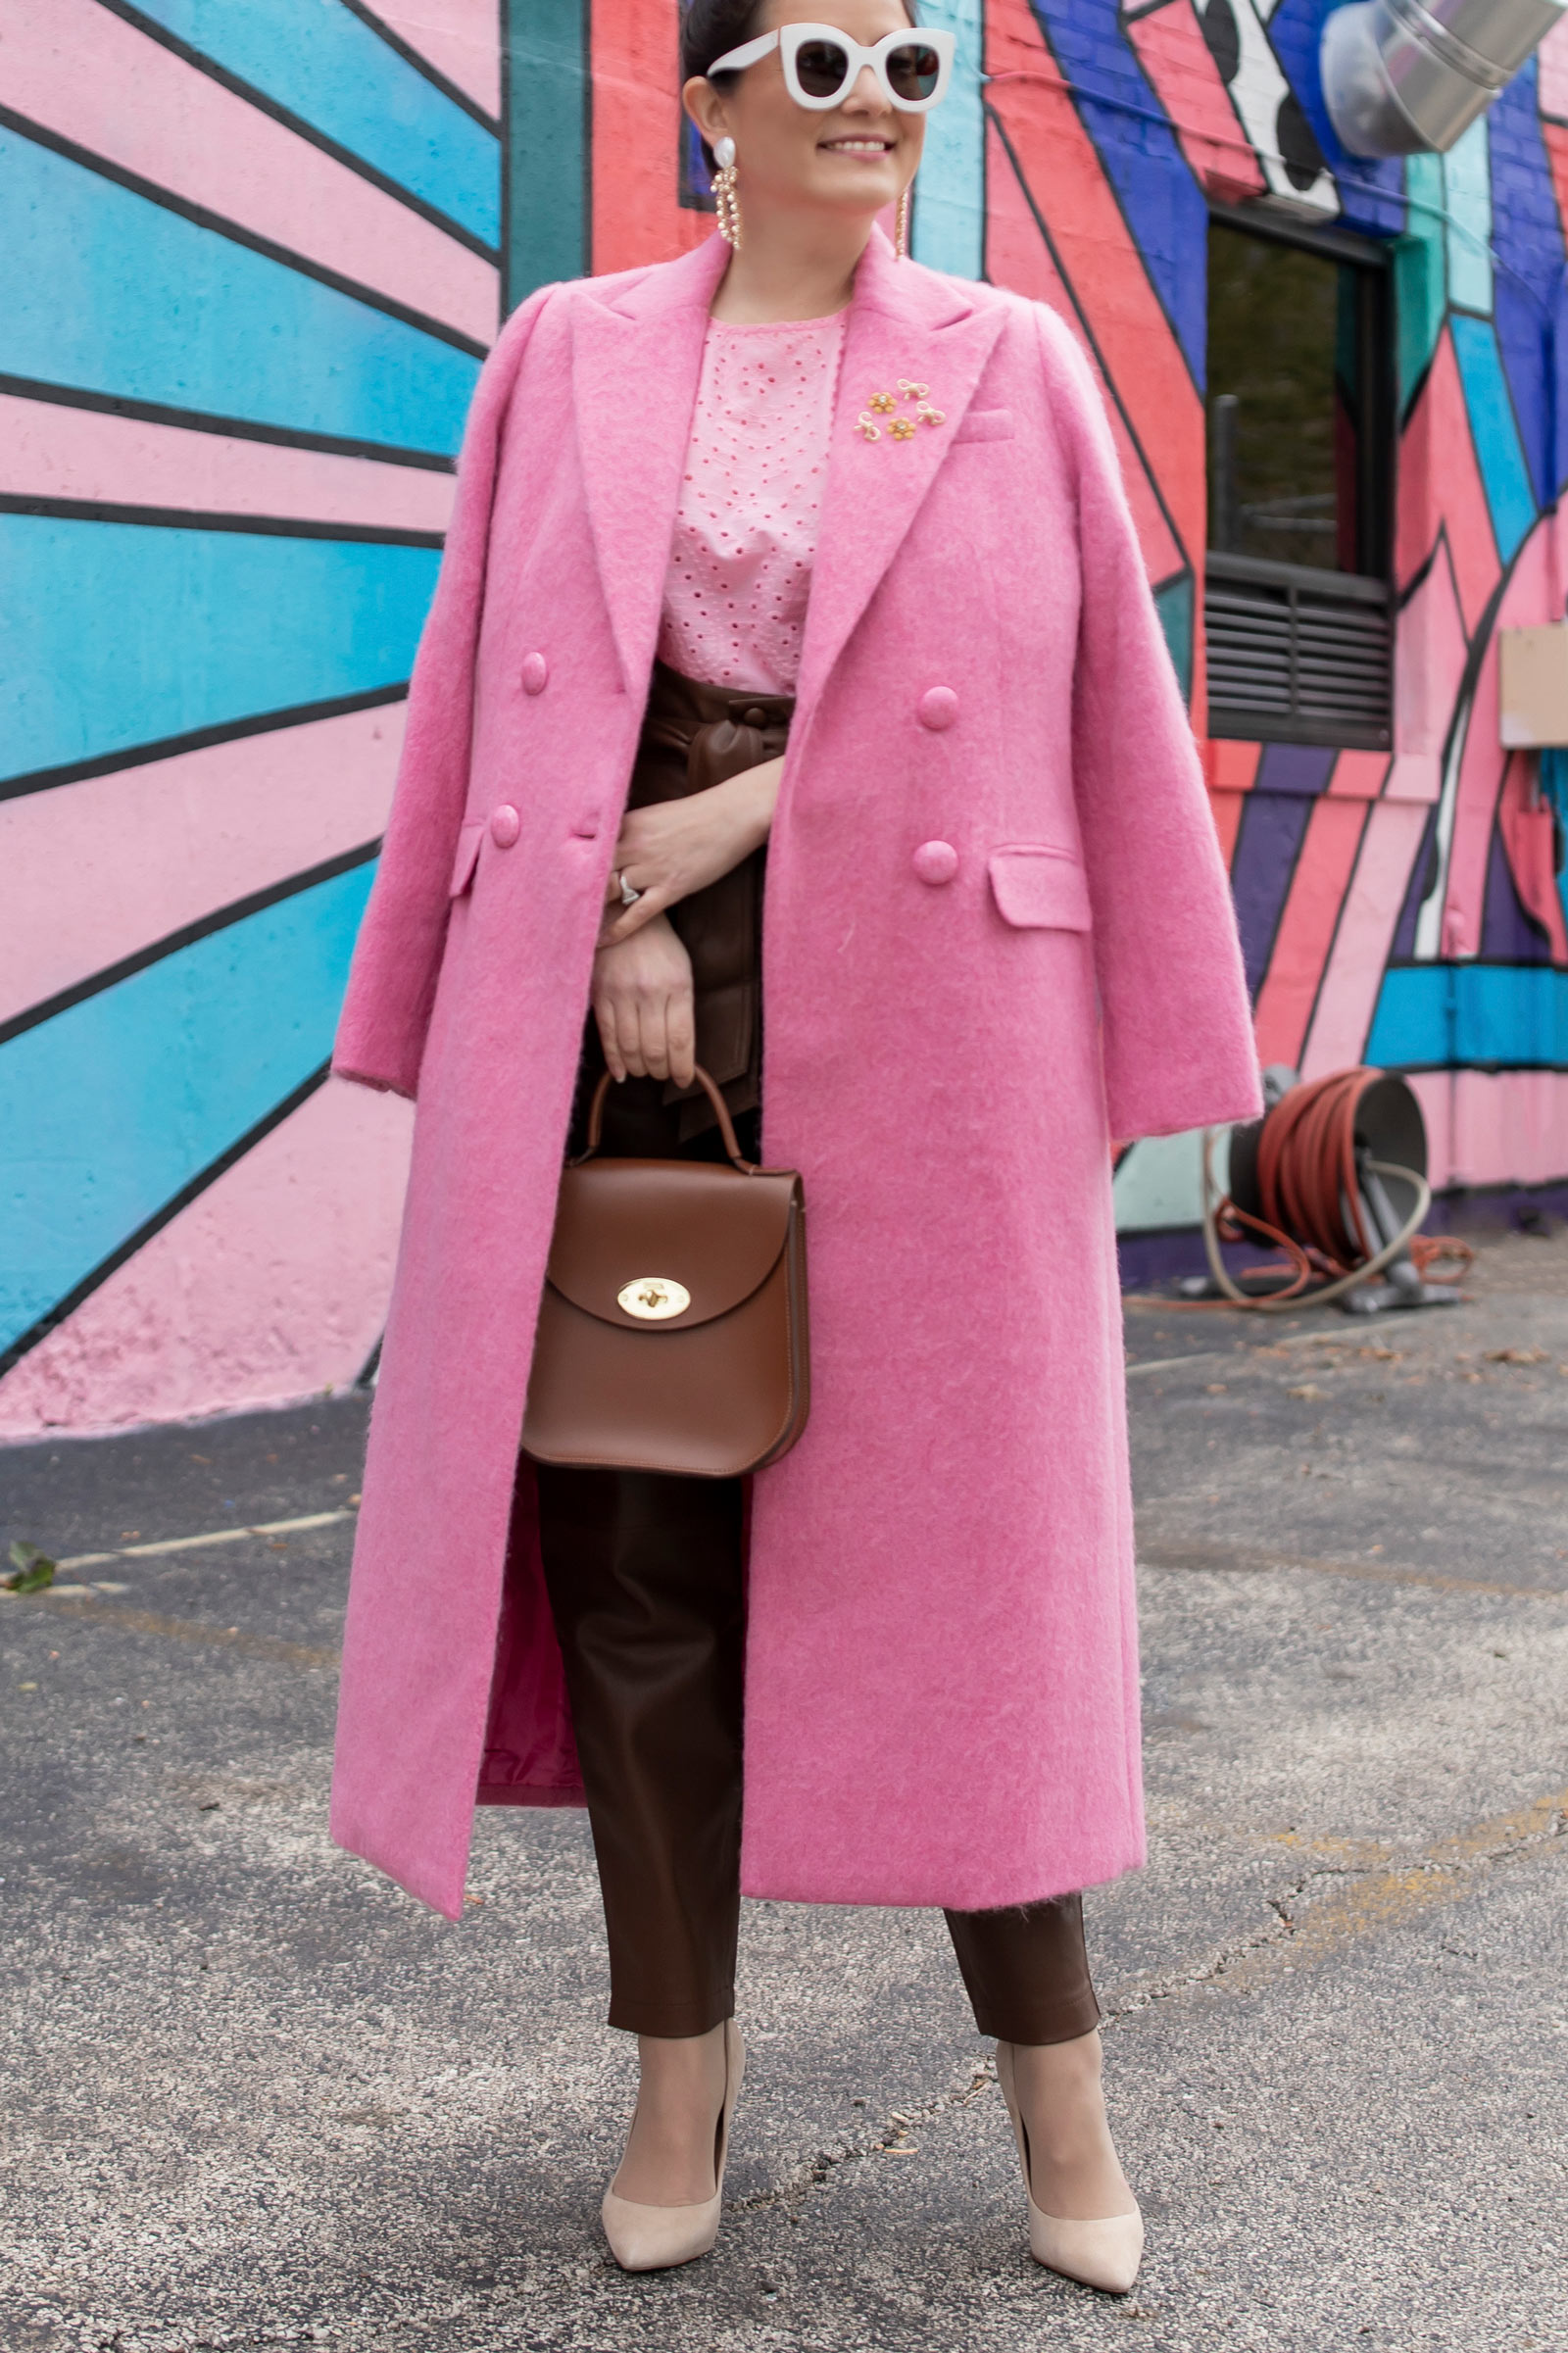 Jennifer Lake LoveShackFancy Pink Coat